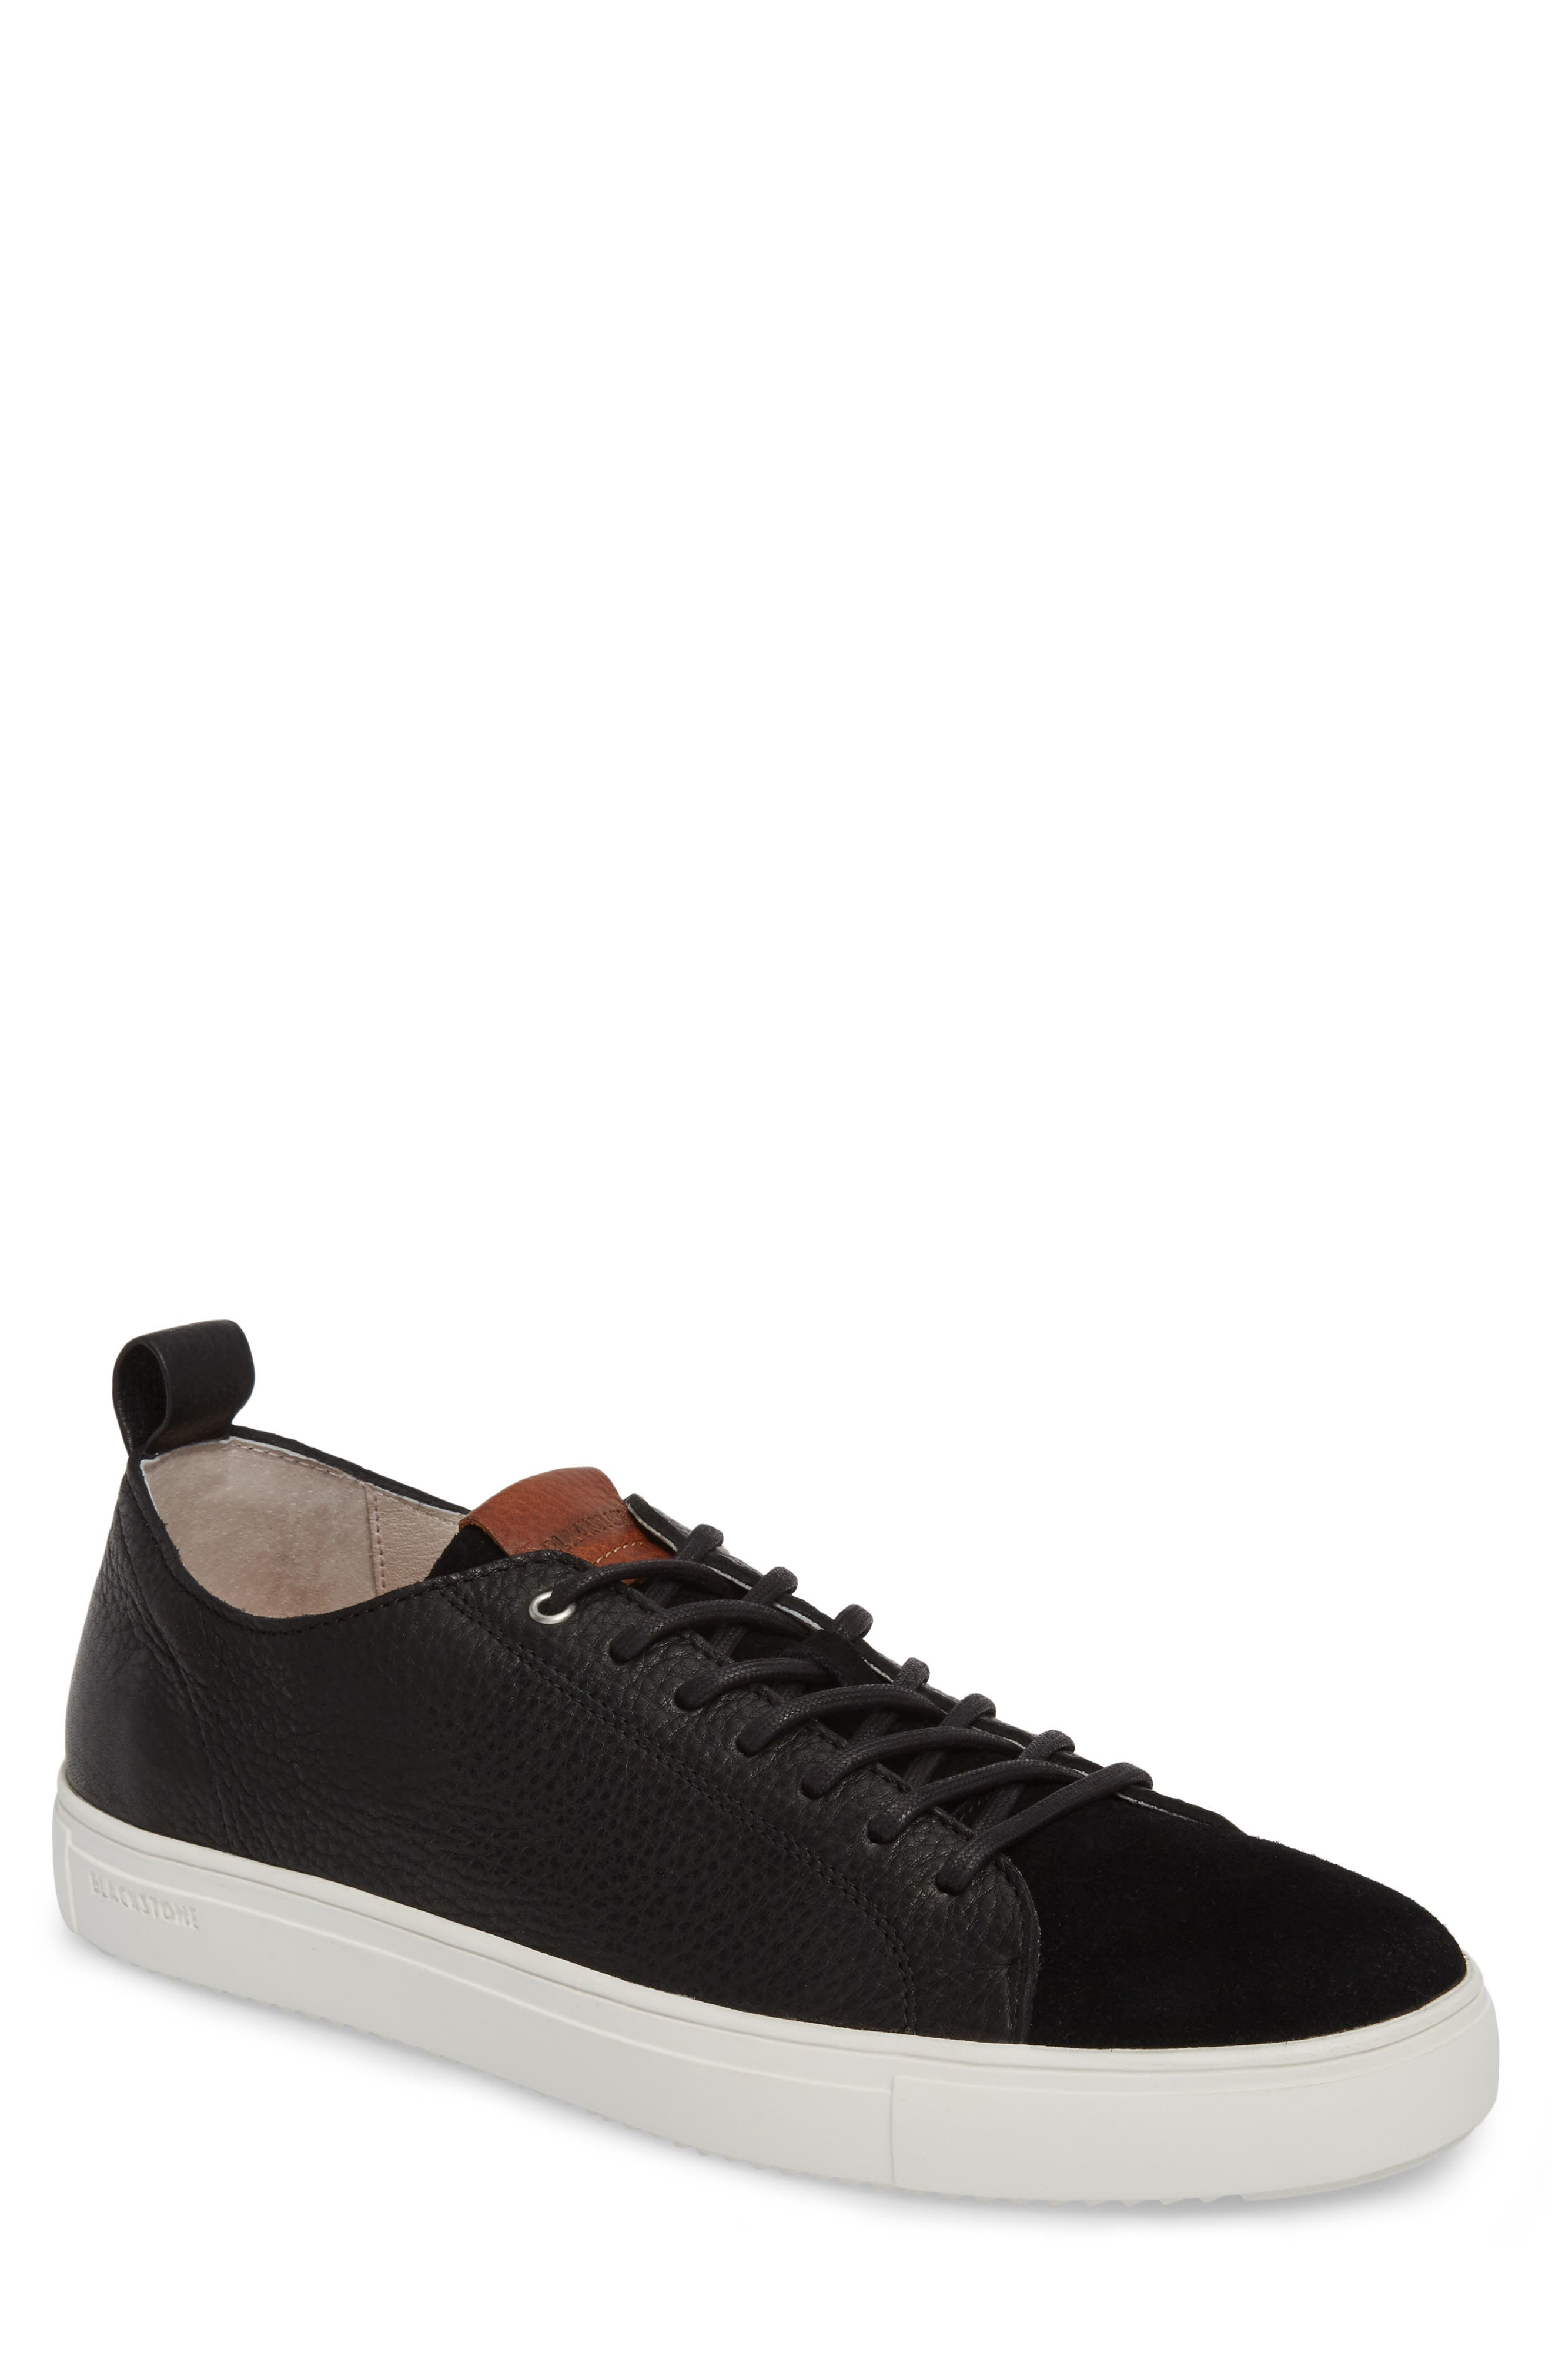 PM46 Low Top Sneaker,                         Main,                         color, BLACK LEATHER